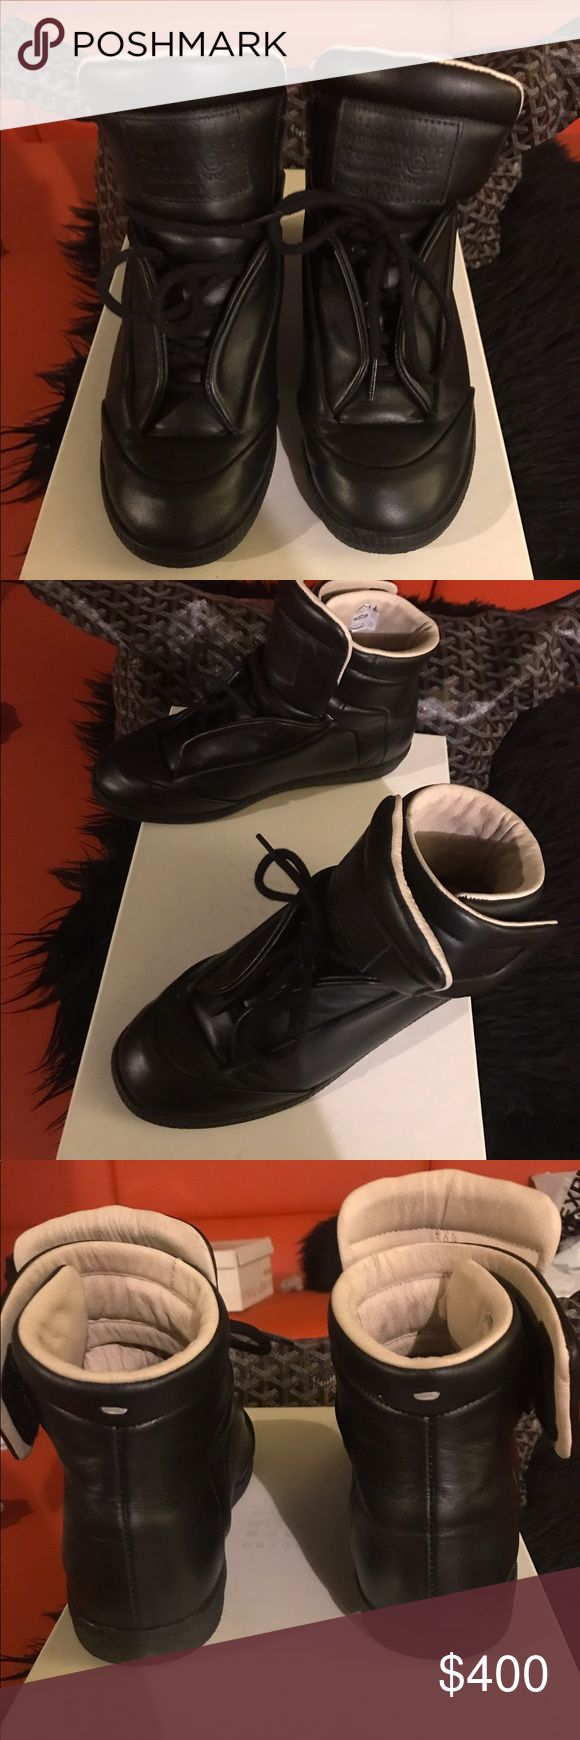 Women's maison martin margiela high top sneakers Blk leather margiela sneakers. Worn!! But in good condition 💯 authentic. MAKE AN OFFER Maison Martin Margiela Shoes Sneakers